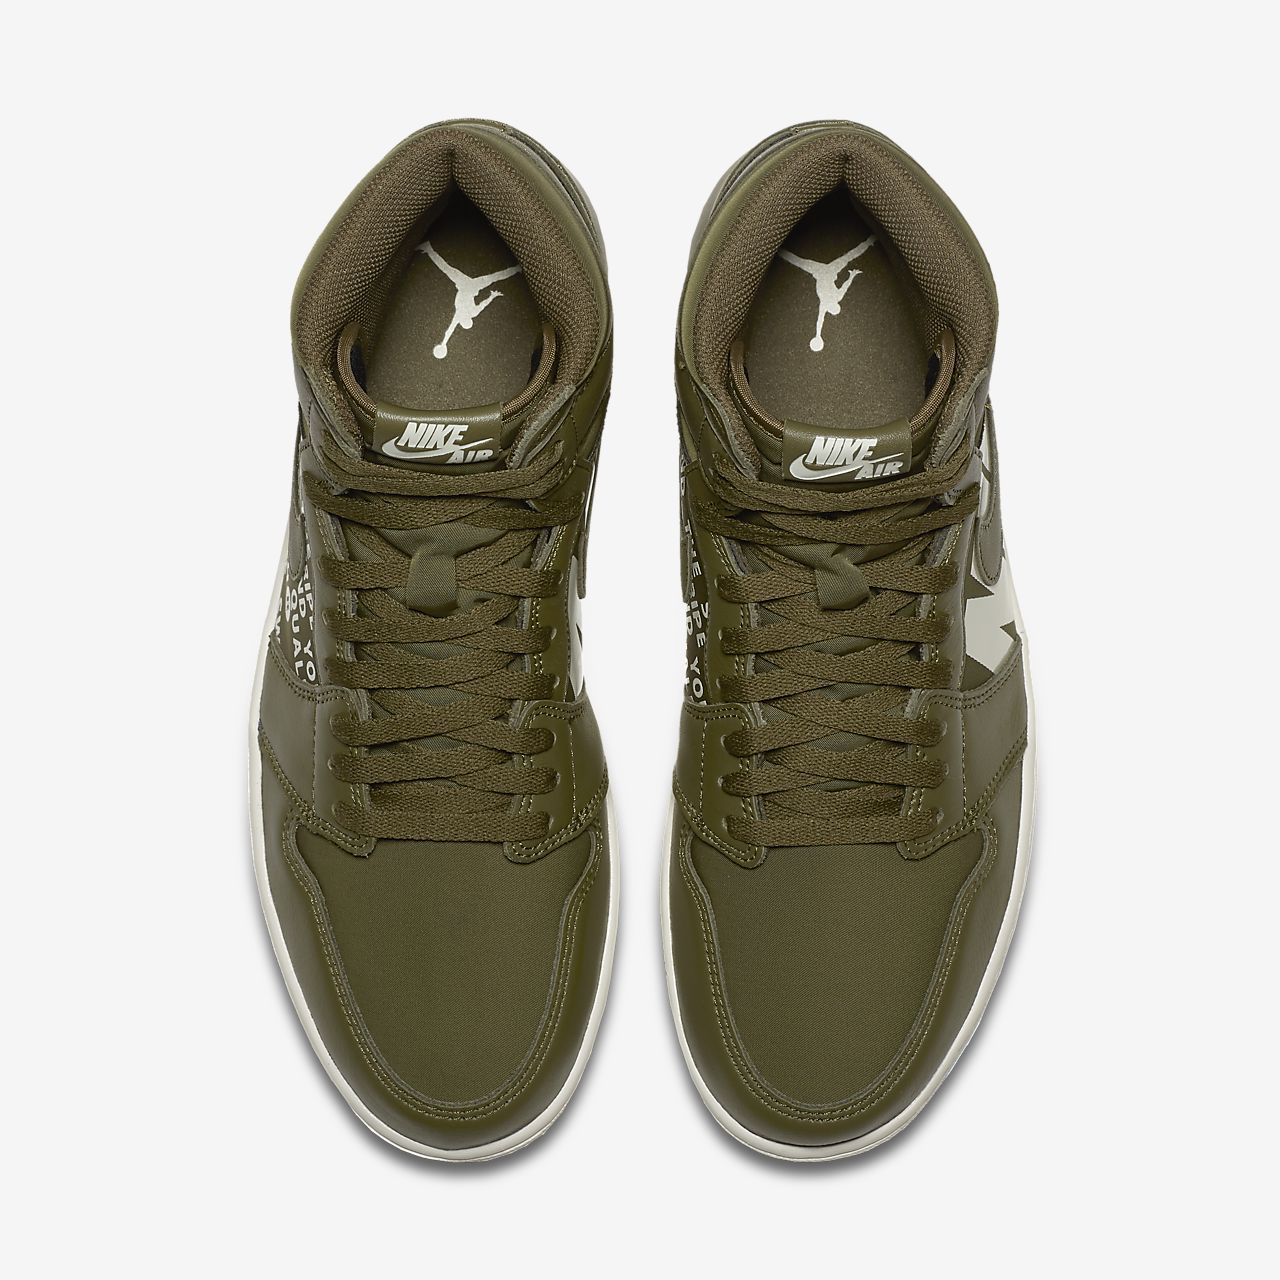 cc24ad66abd8f8 Air Jordan 1 Retro High OG Shoe. Nike.com GB